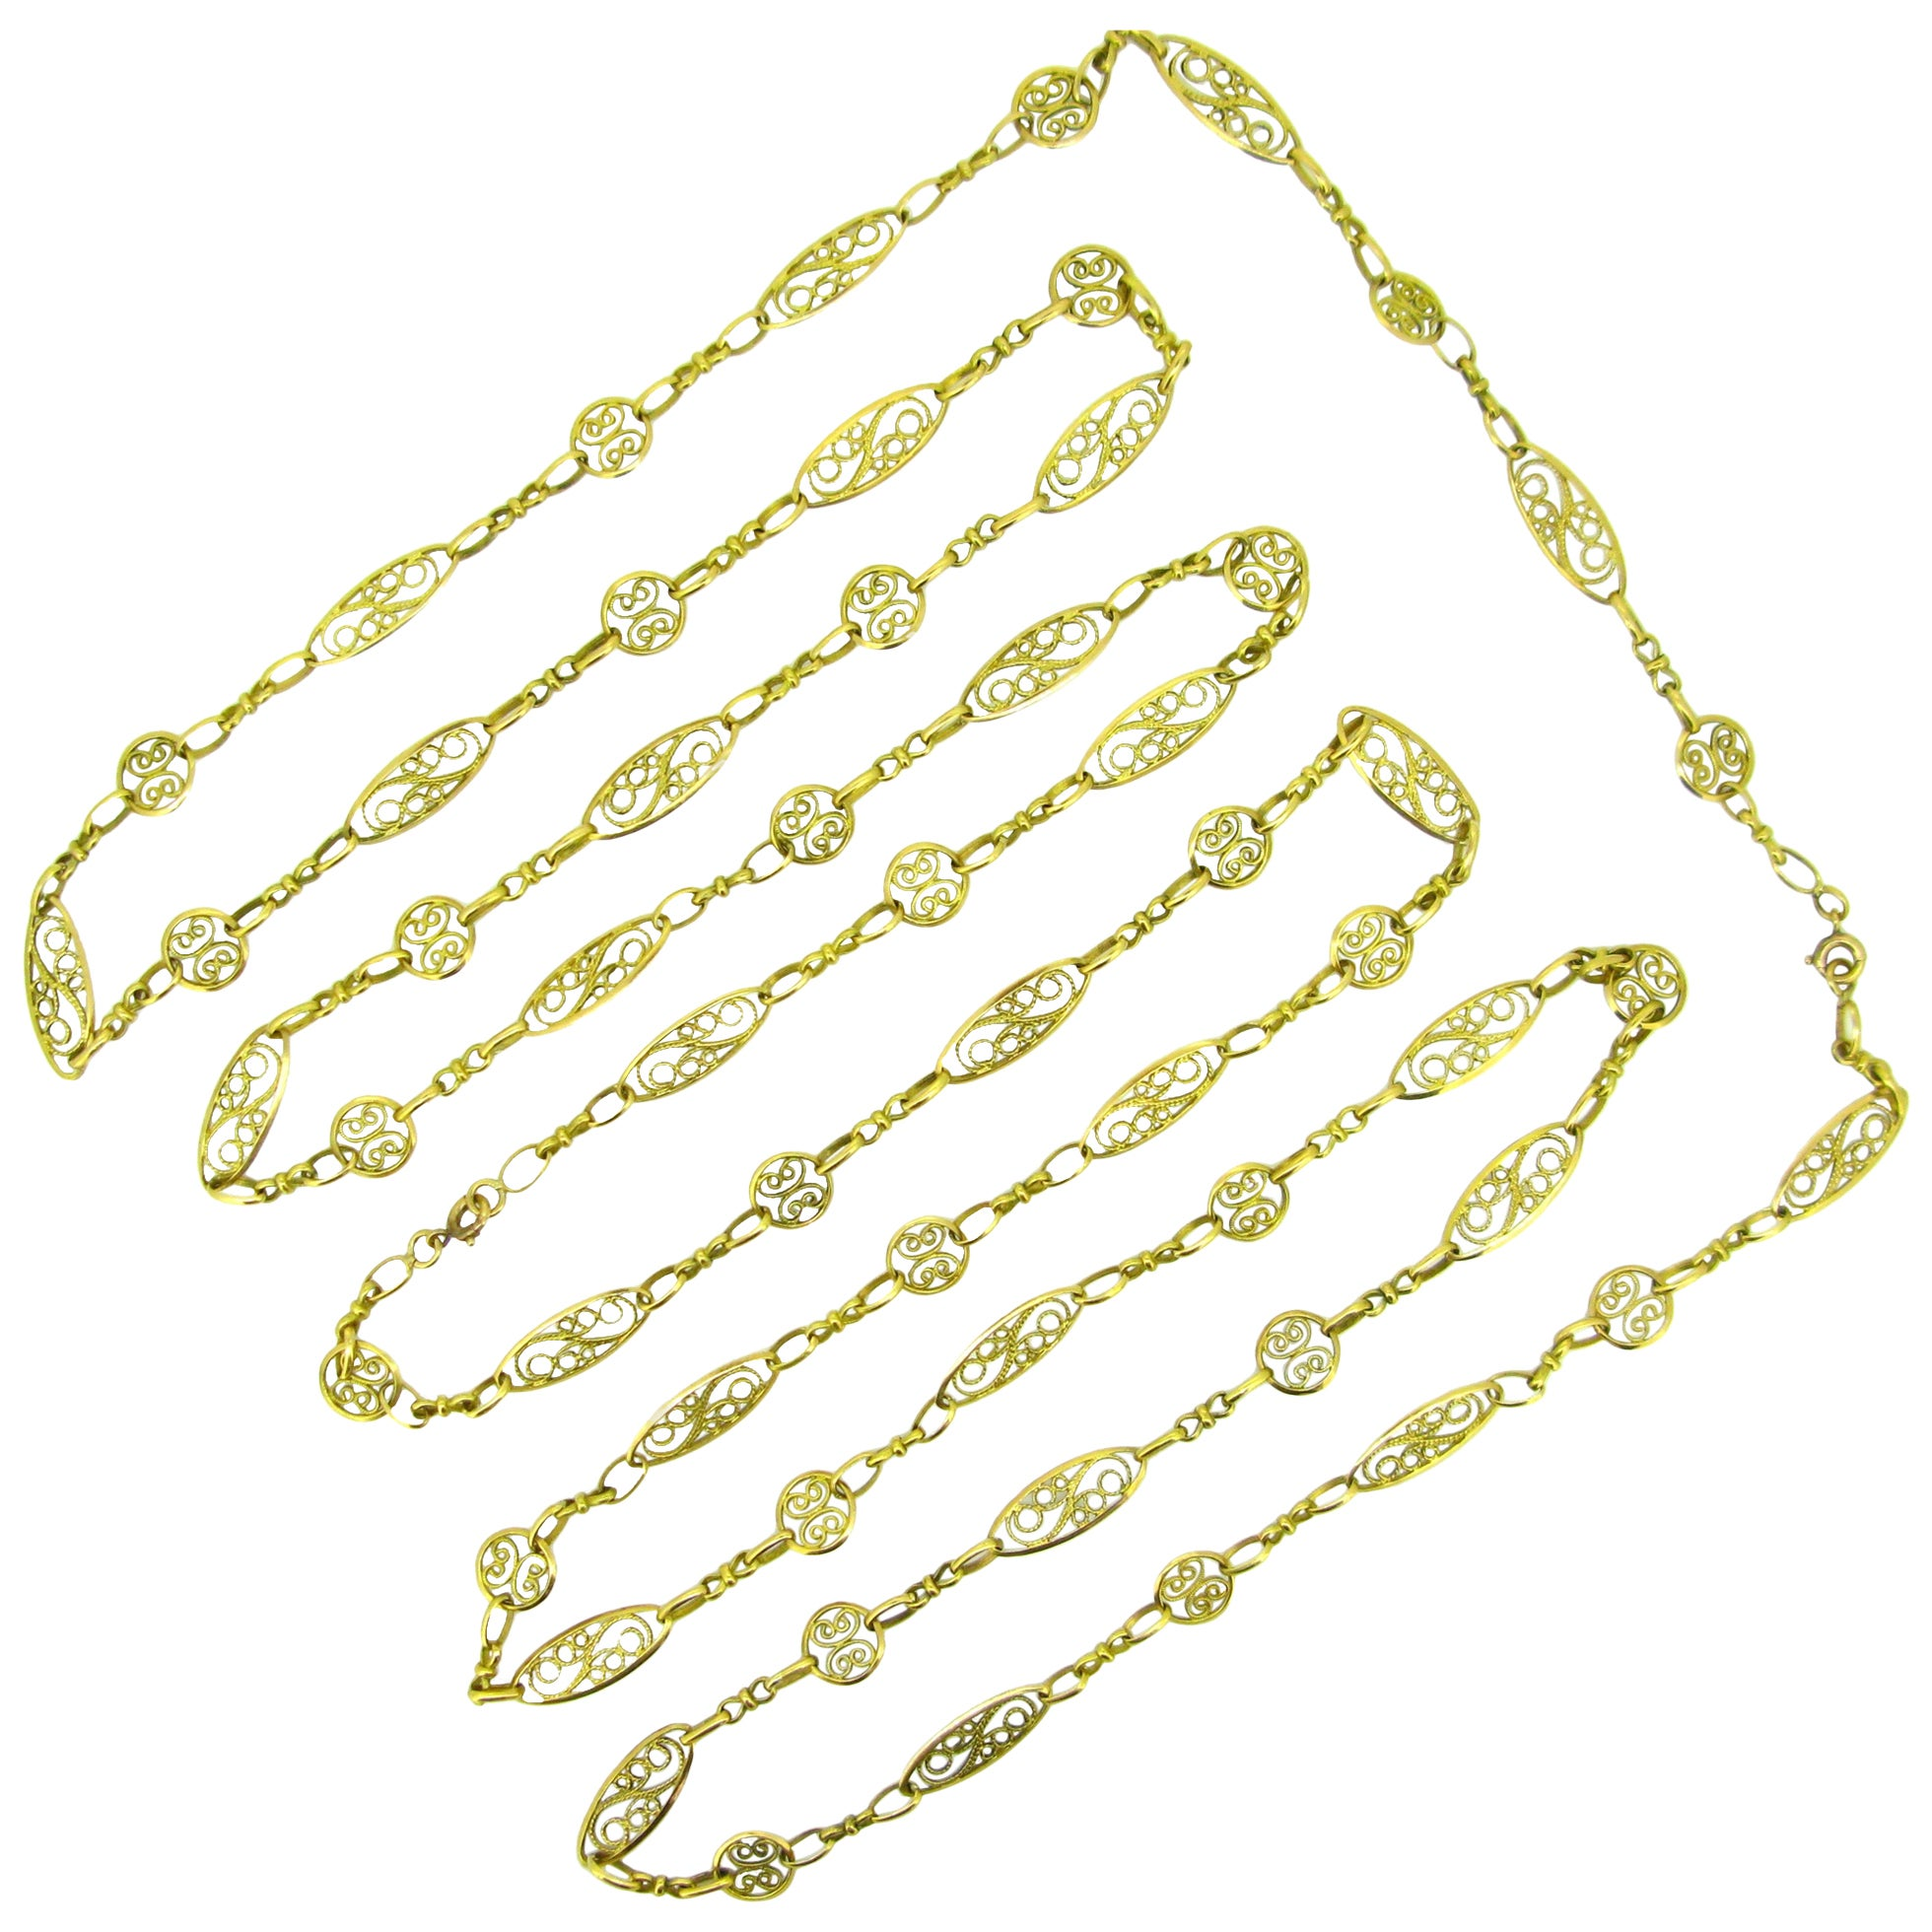 Antique Victorian Yellow Gold Long Chain Necklace